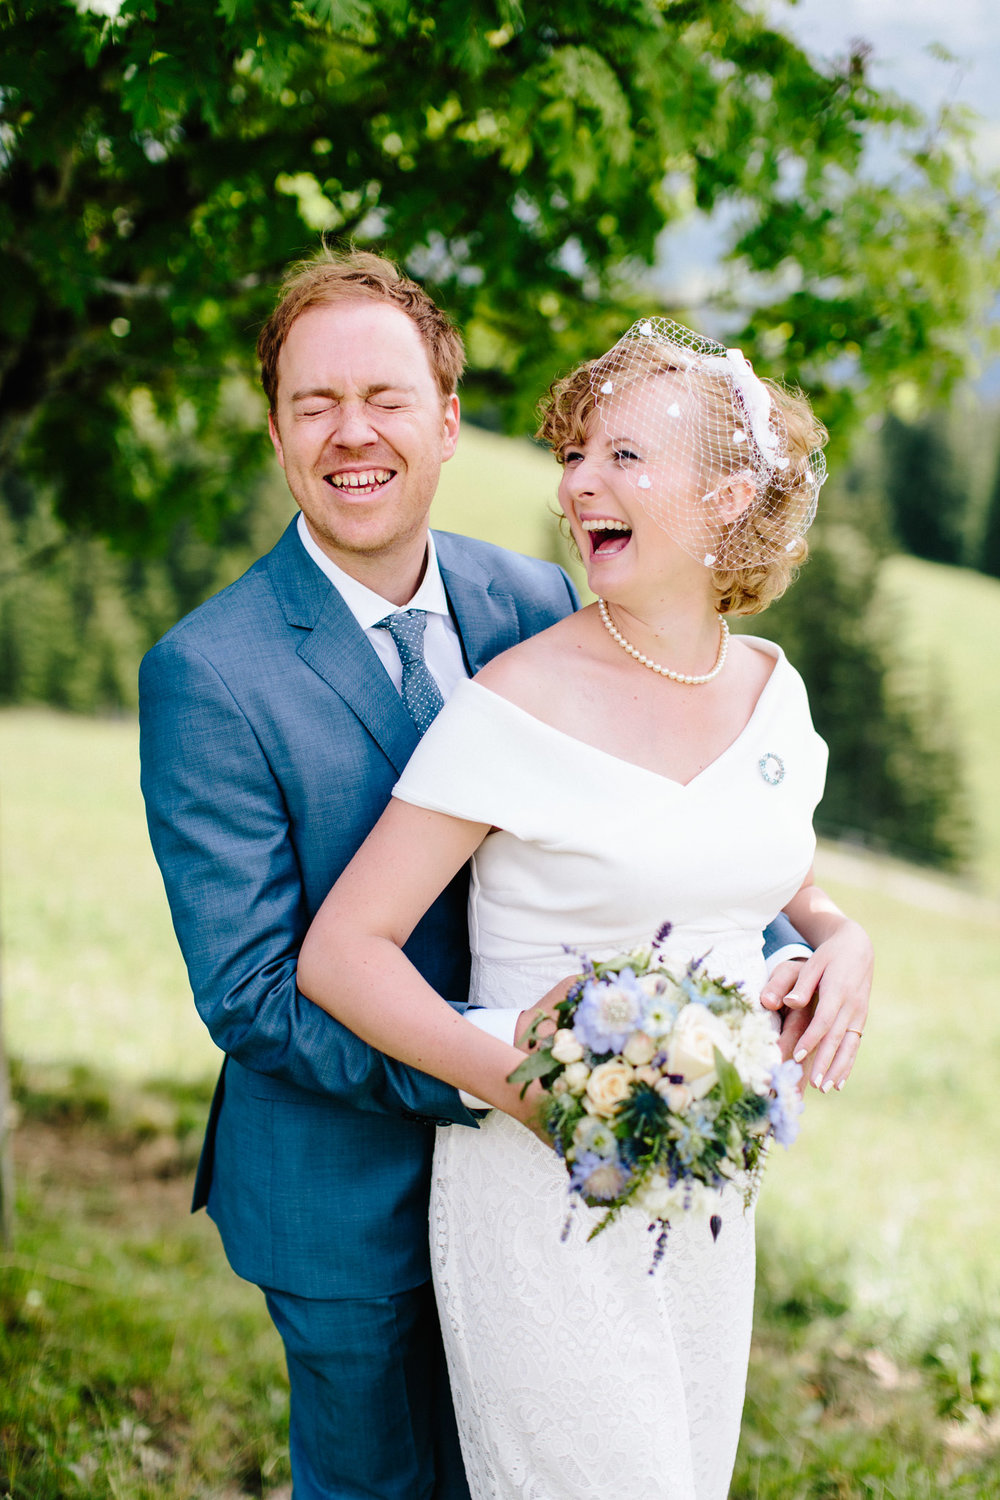 Lenl-Simmental-Buehlerhof-Pia-Anna-Christian-Wedding-Photography-EK-33.jpg